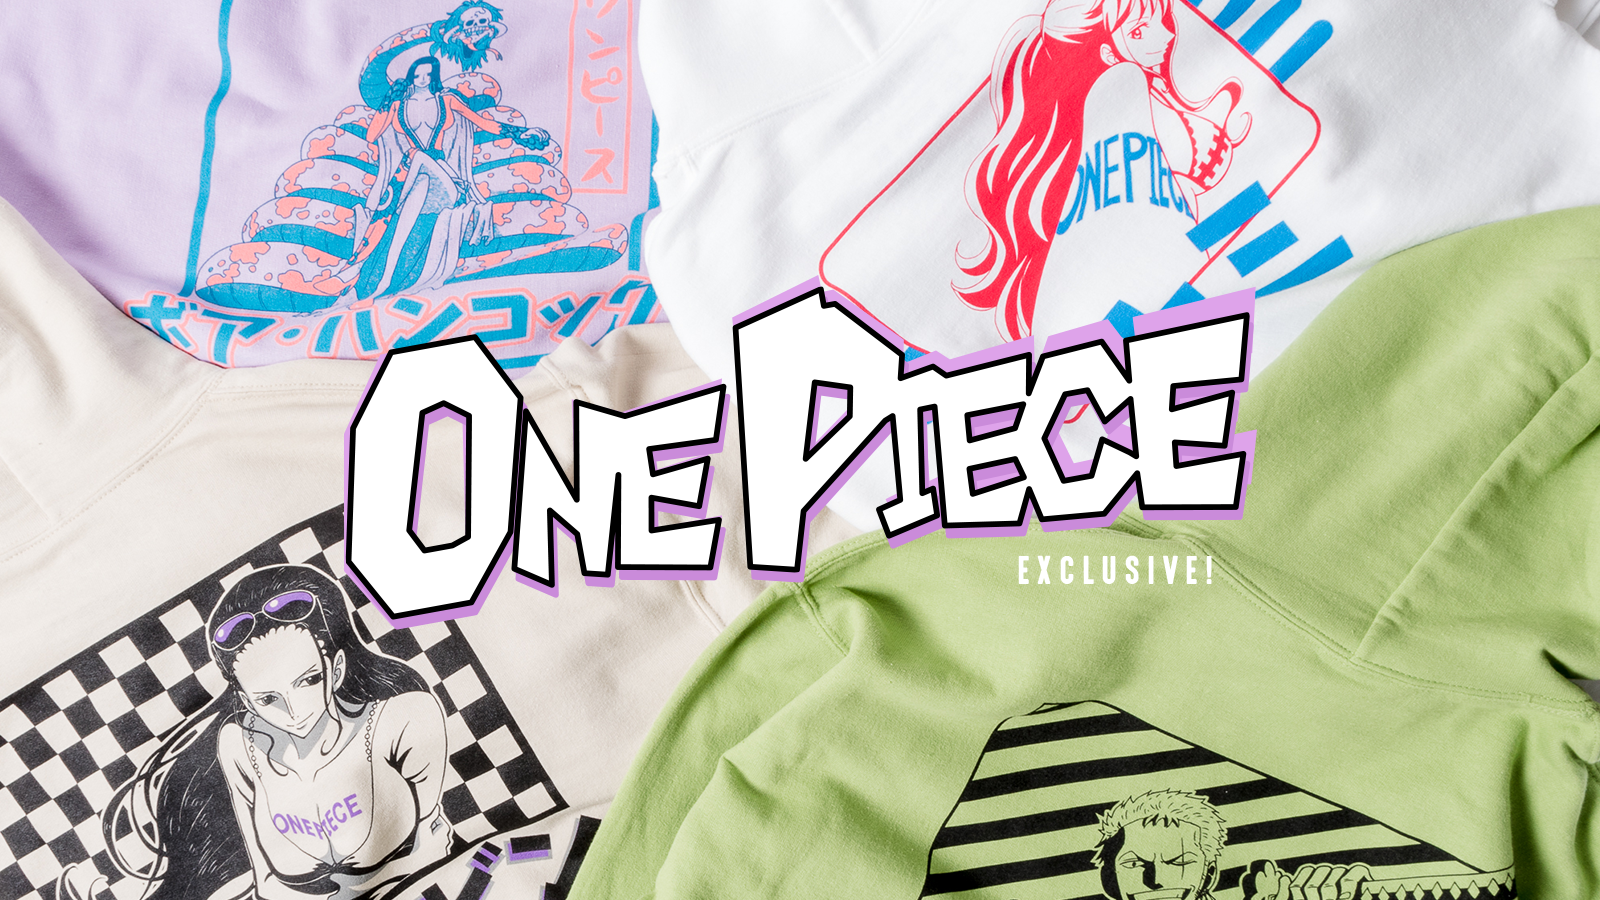 Crunchyroll launches One Piece streetwear collection ...